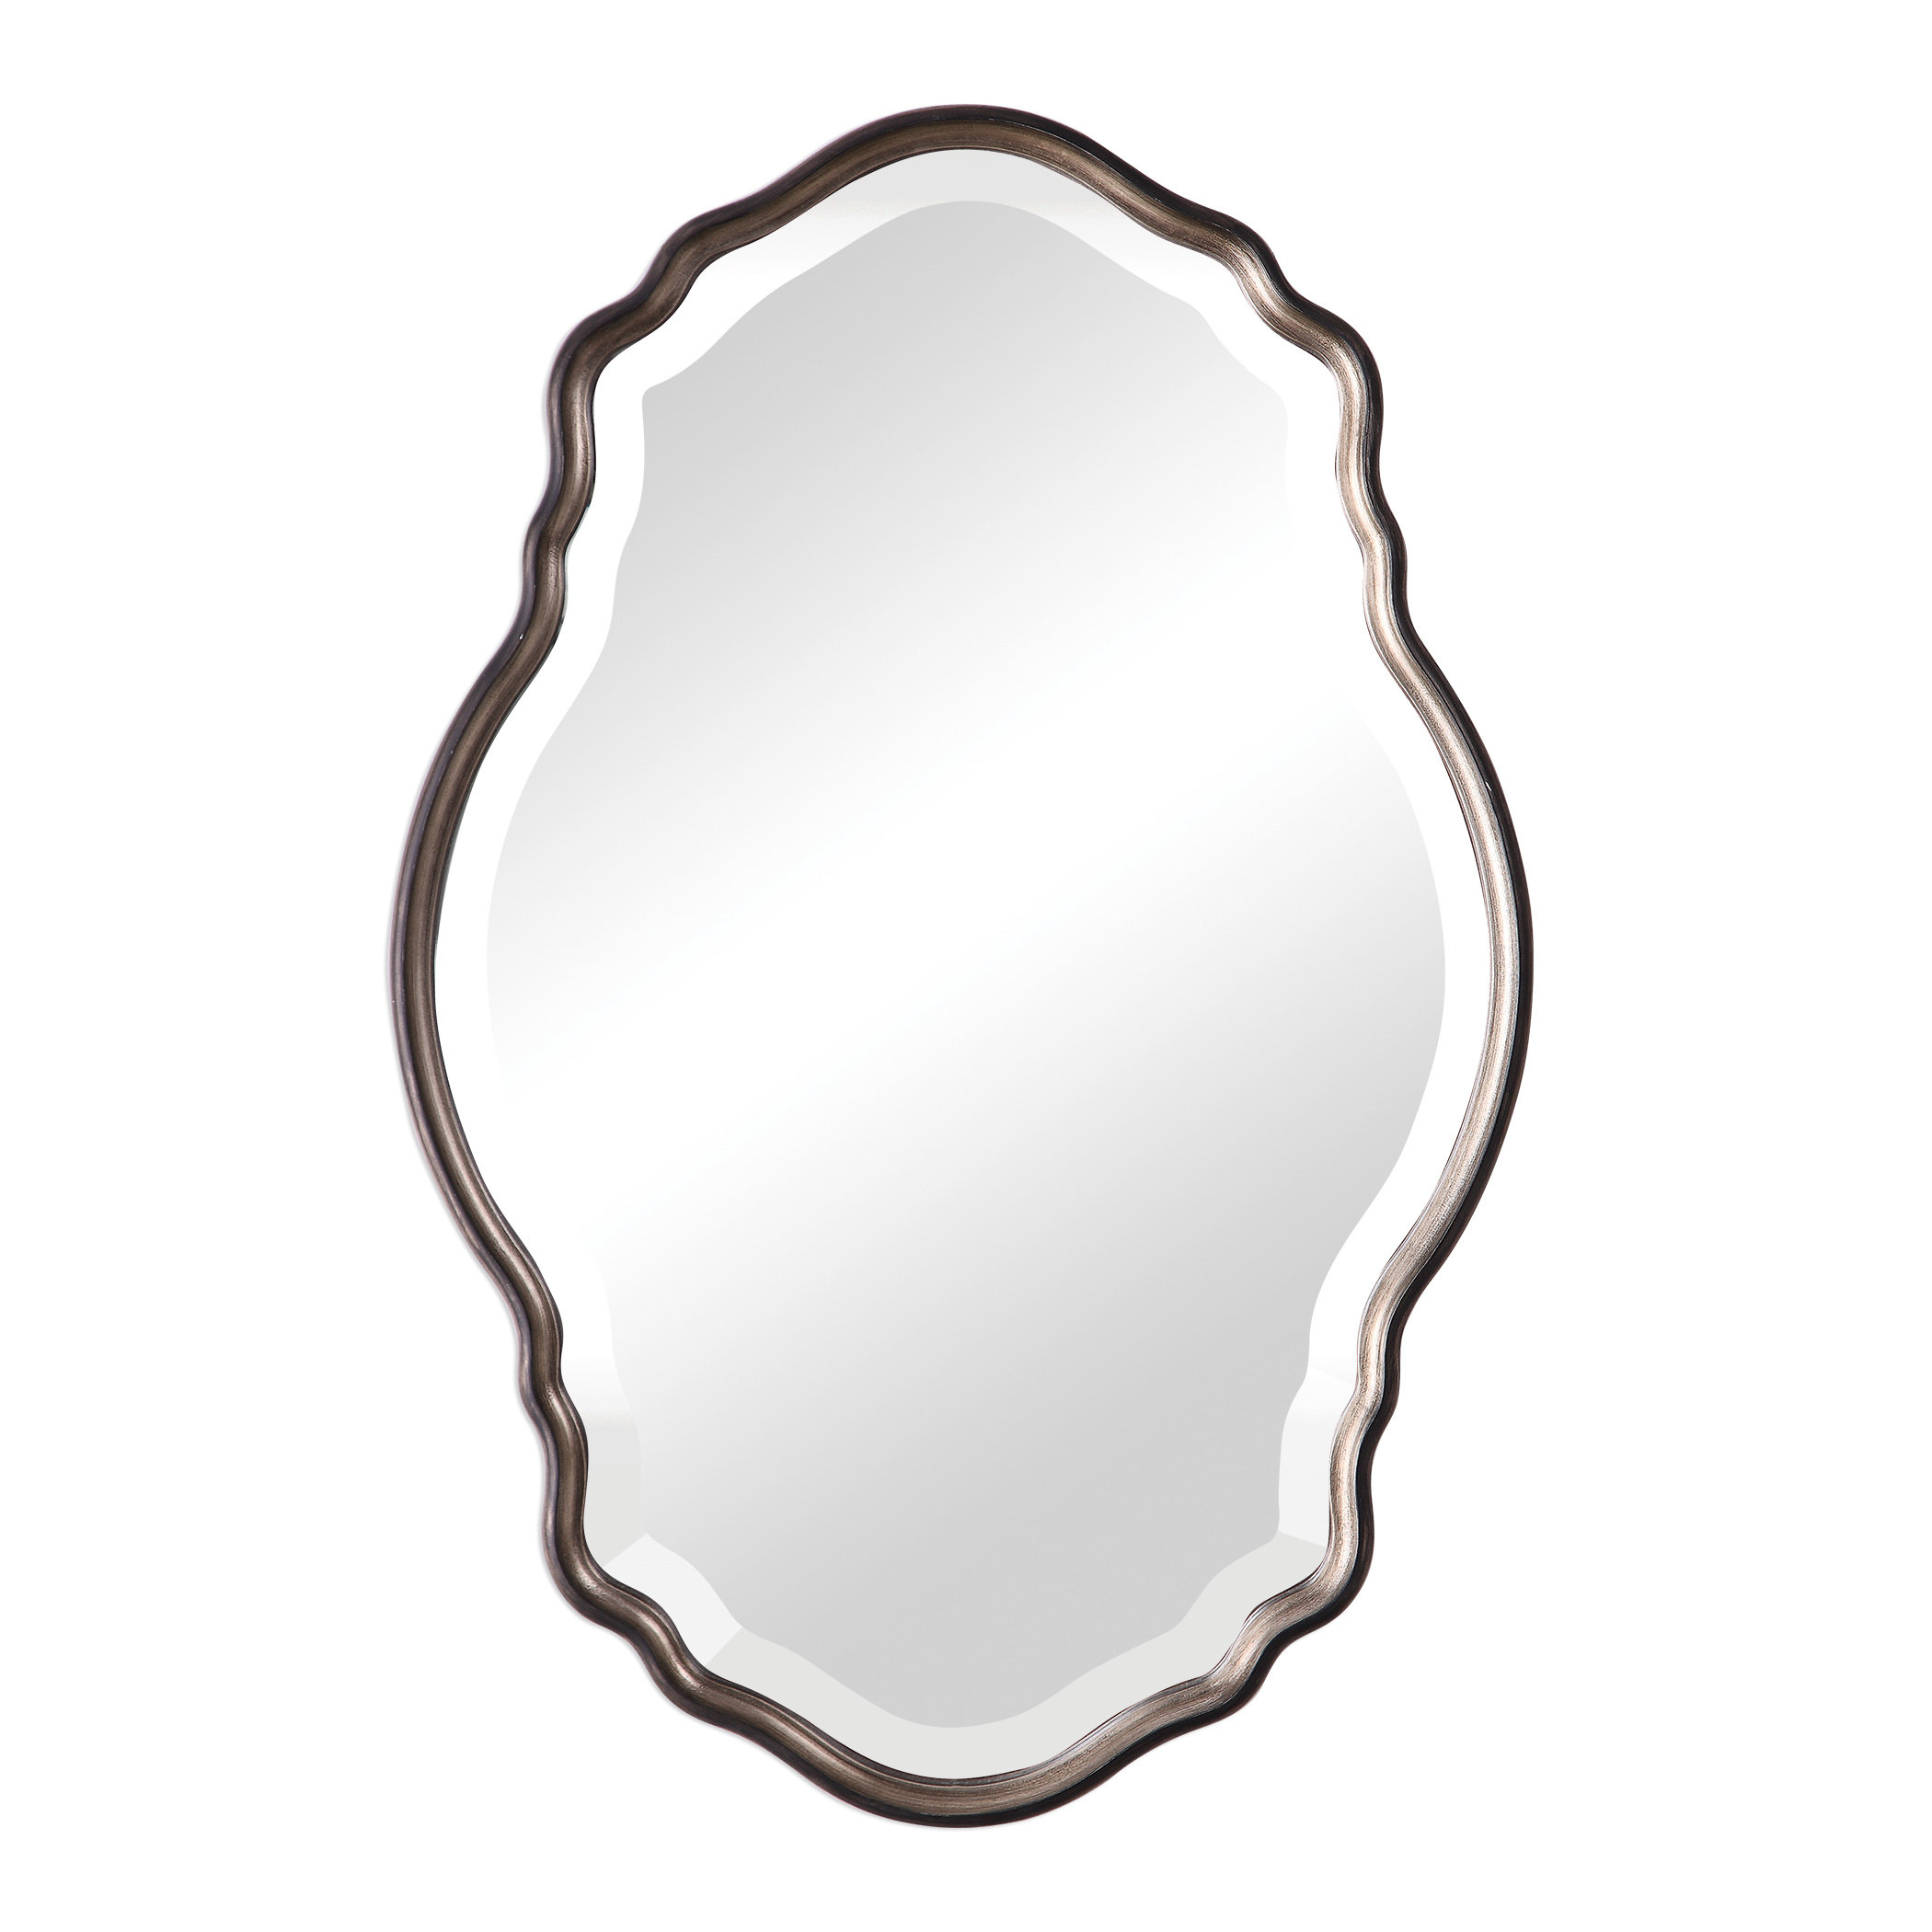 Christner Modern & Contemporary Beveled Wall Mirror Pertaining To Estefania Frameless Wall Mirrors (View 5 of 30)